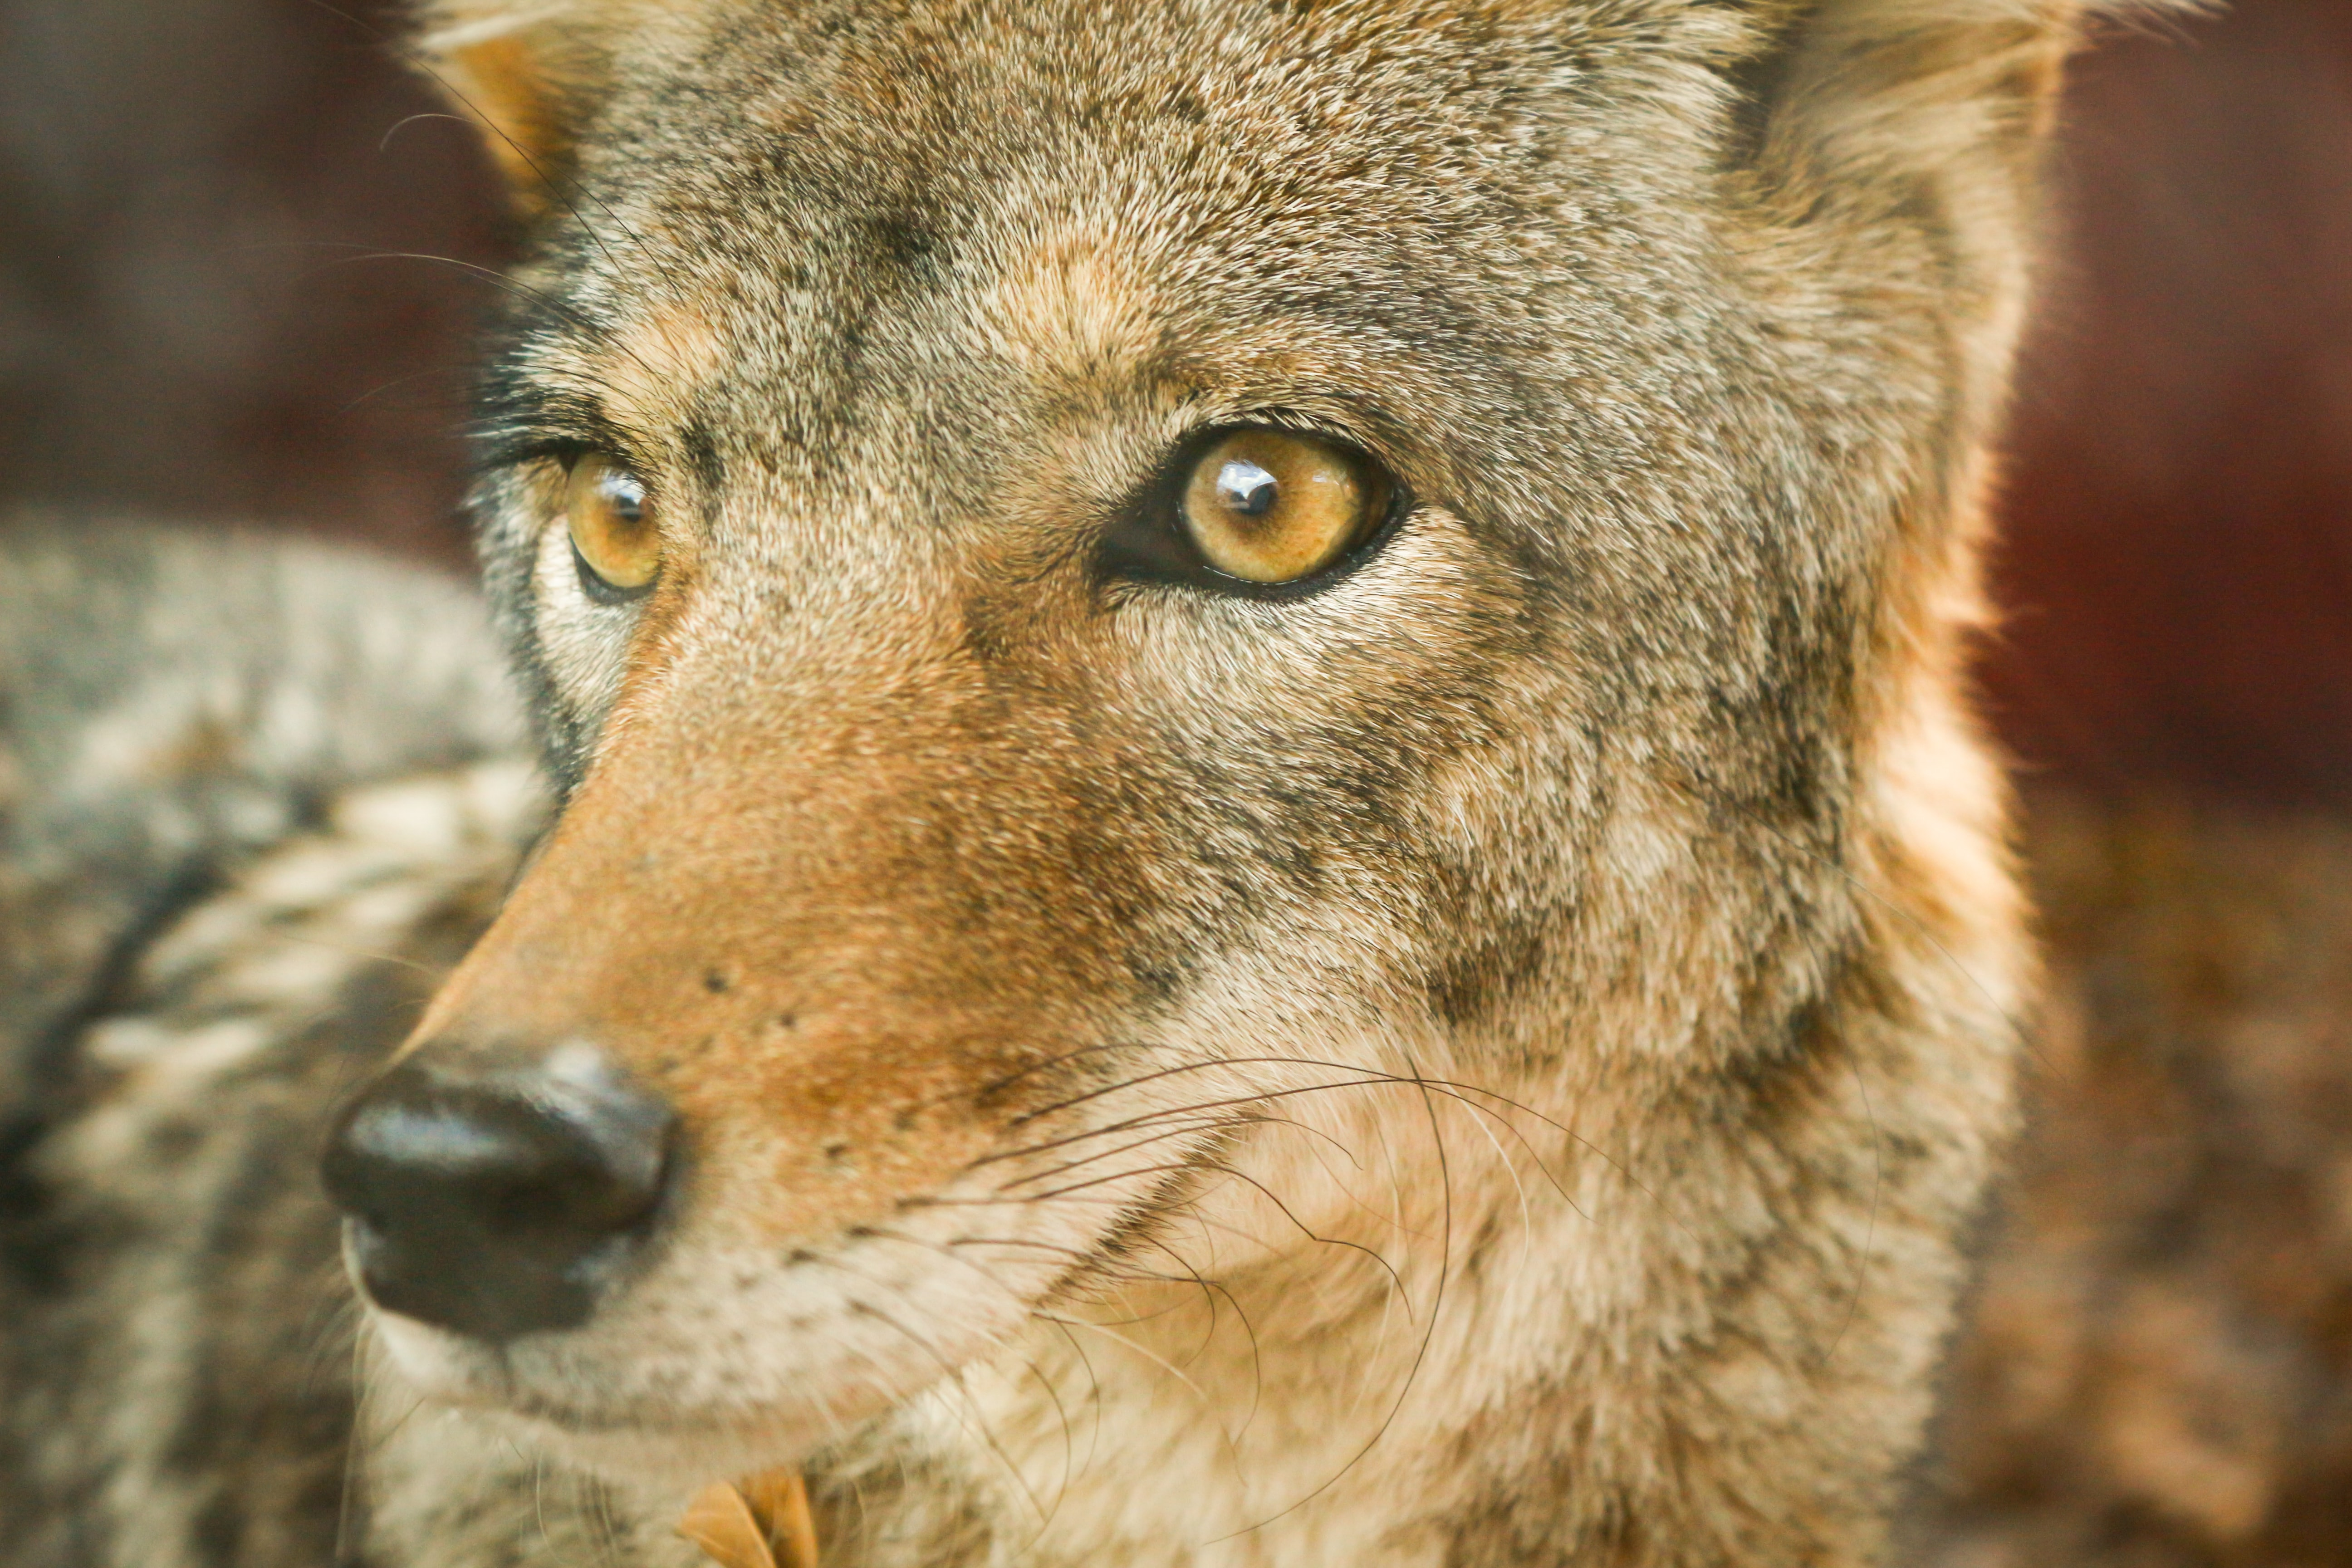 The macro view of the eyes and mouth of a timber wolf in Museo del Desierto